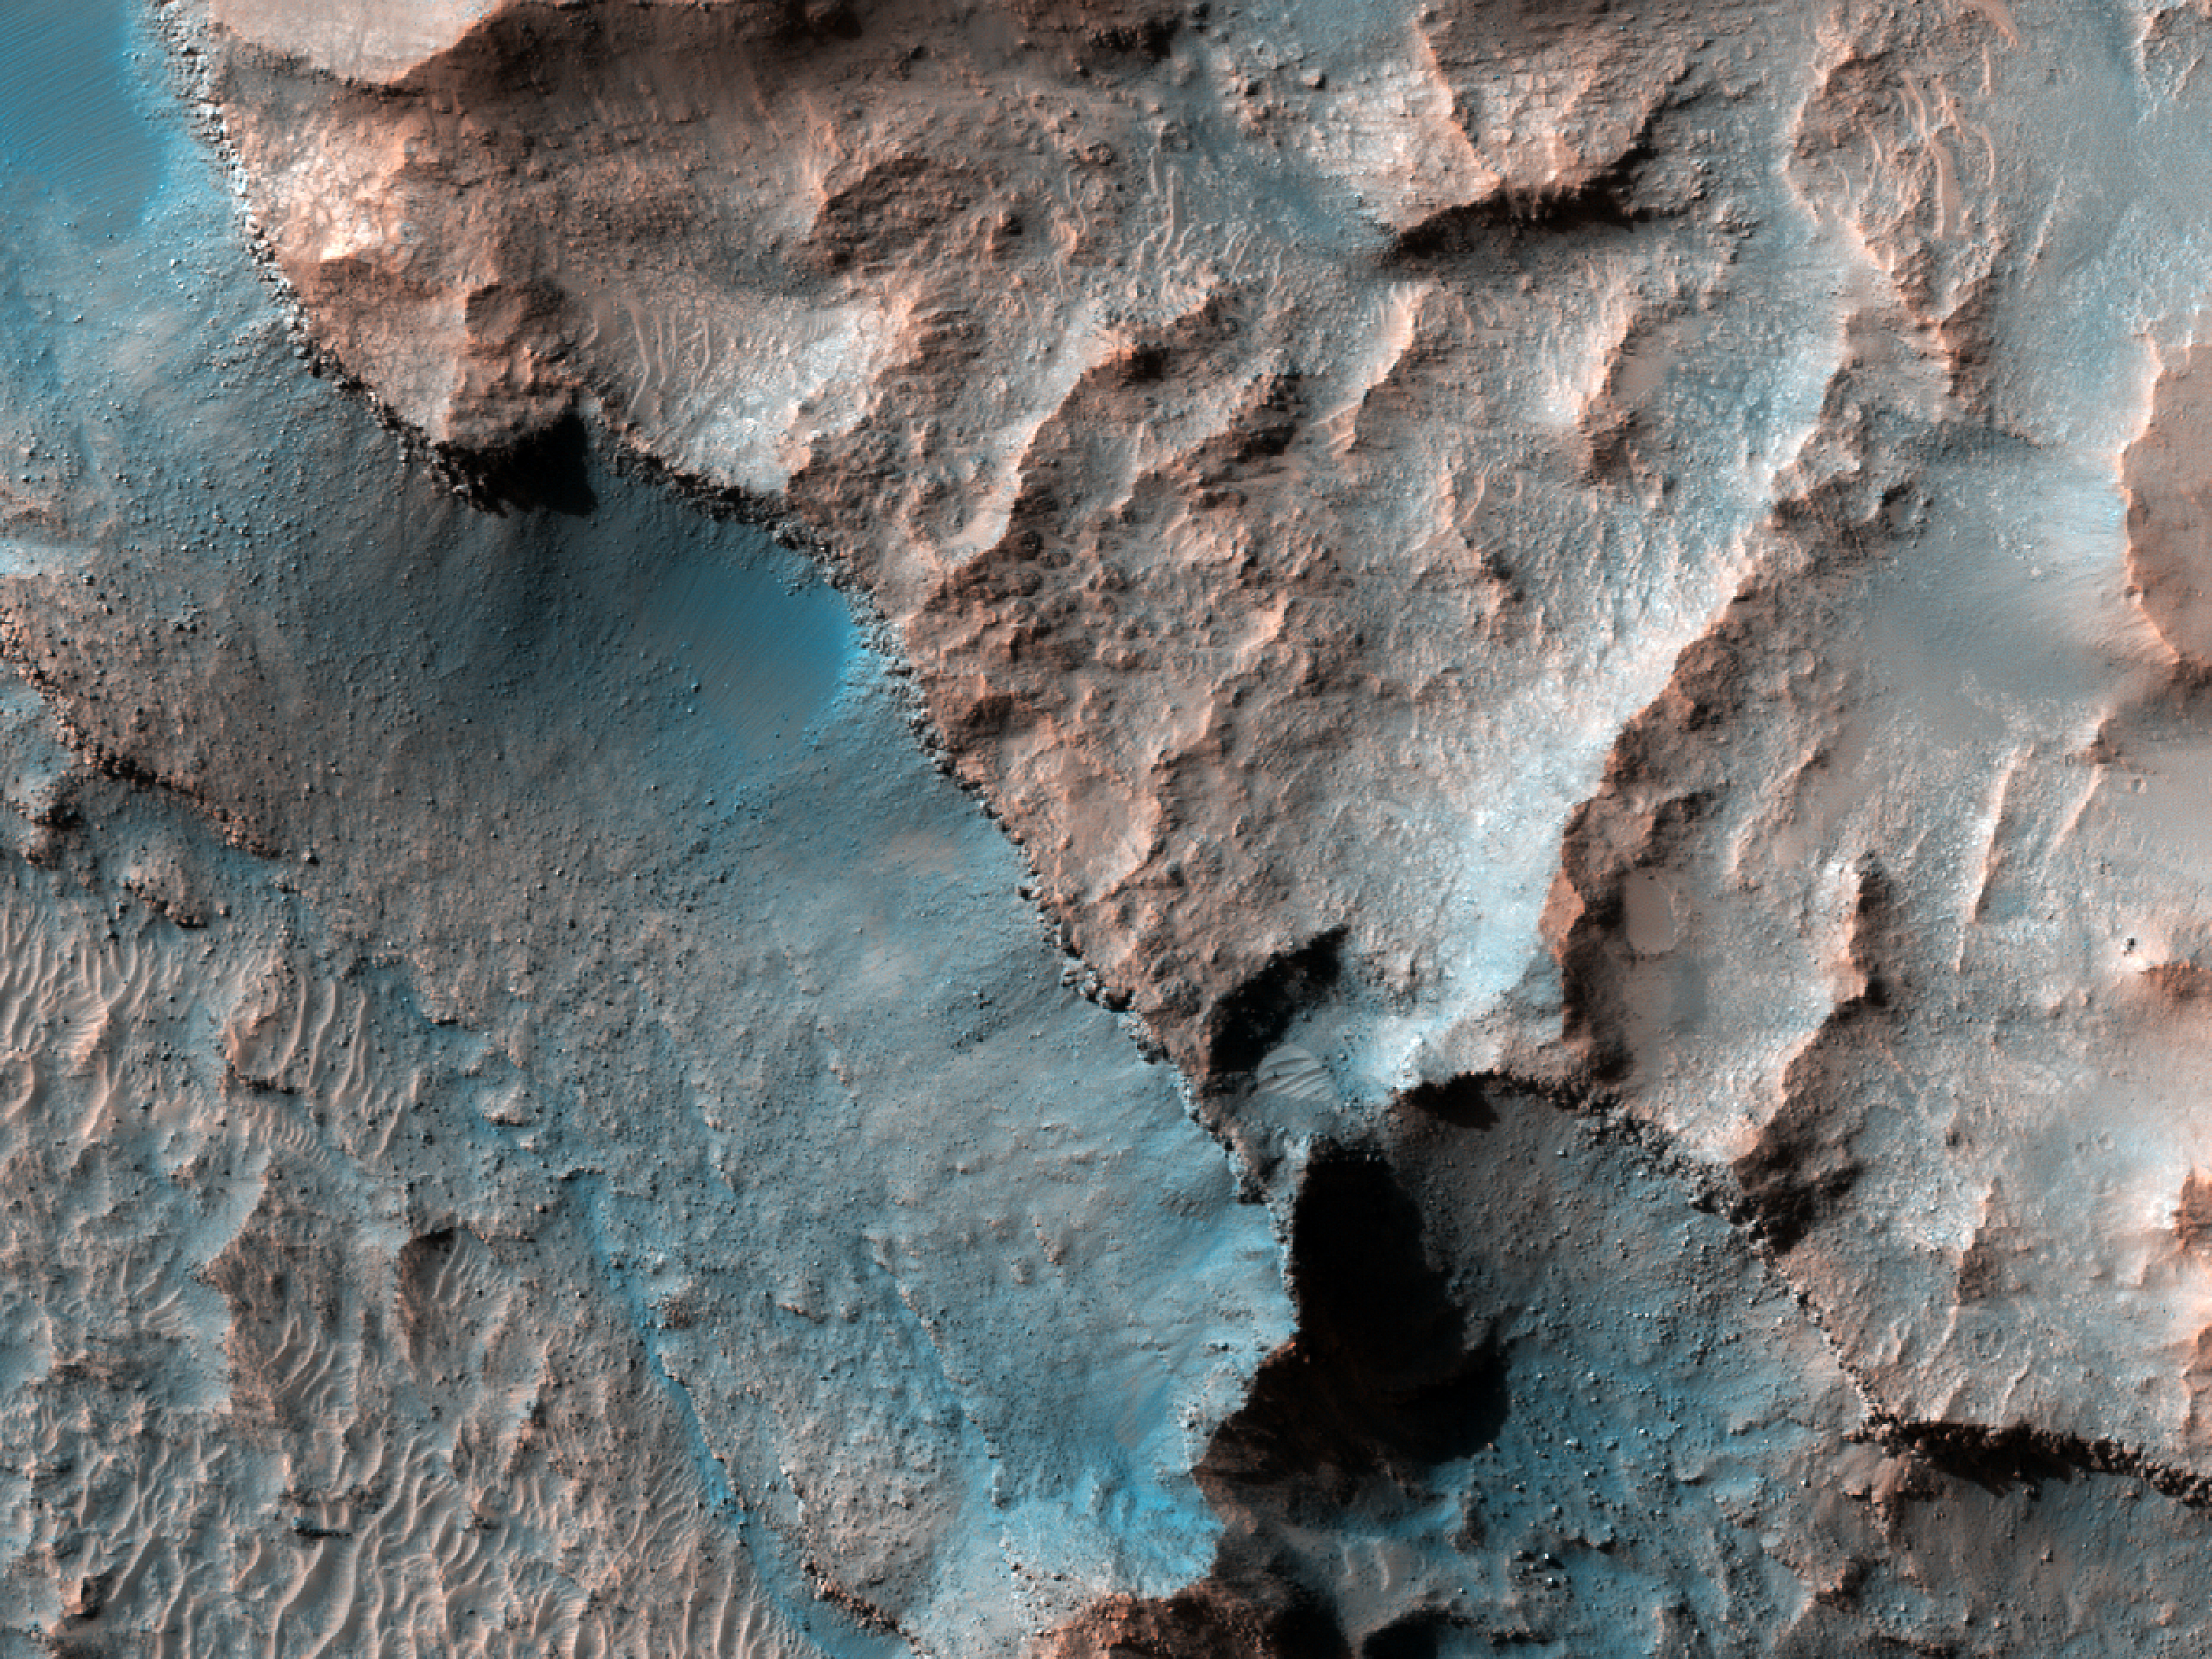 Pit on Crater Floor Exposing Layered Bedrock